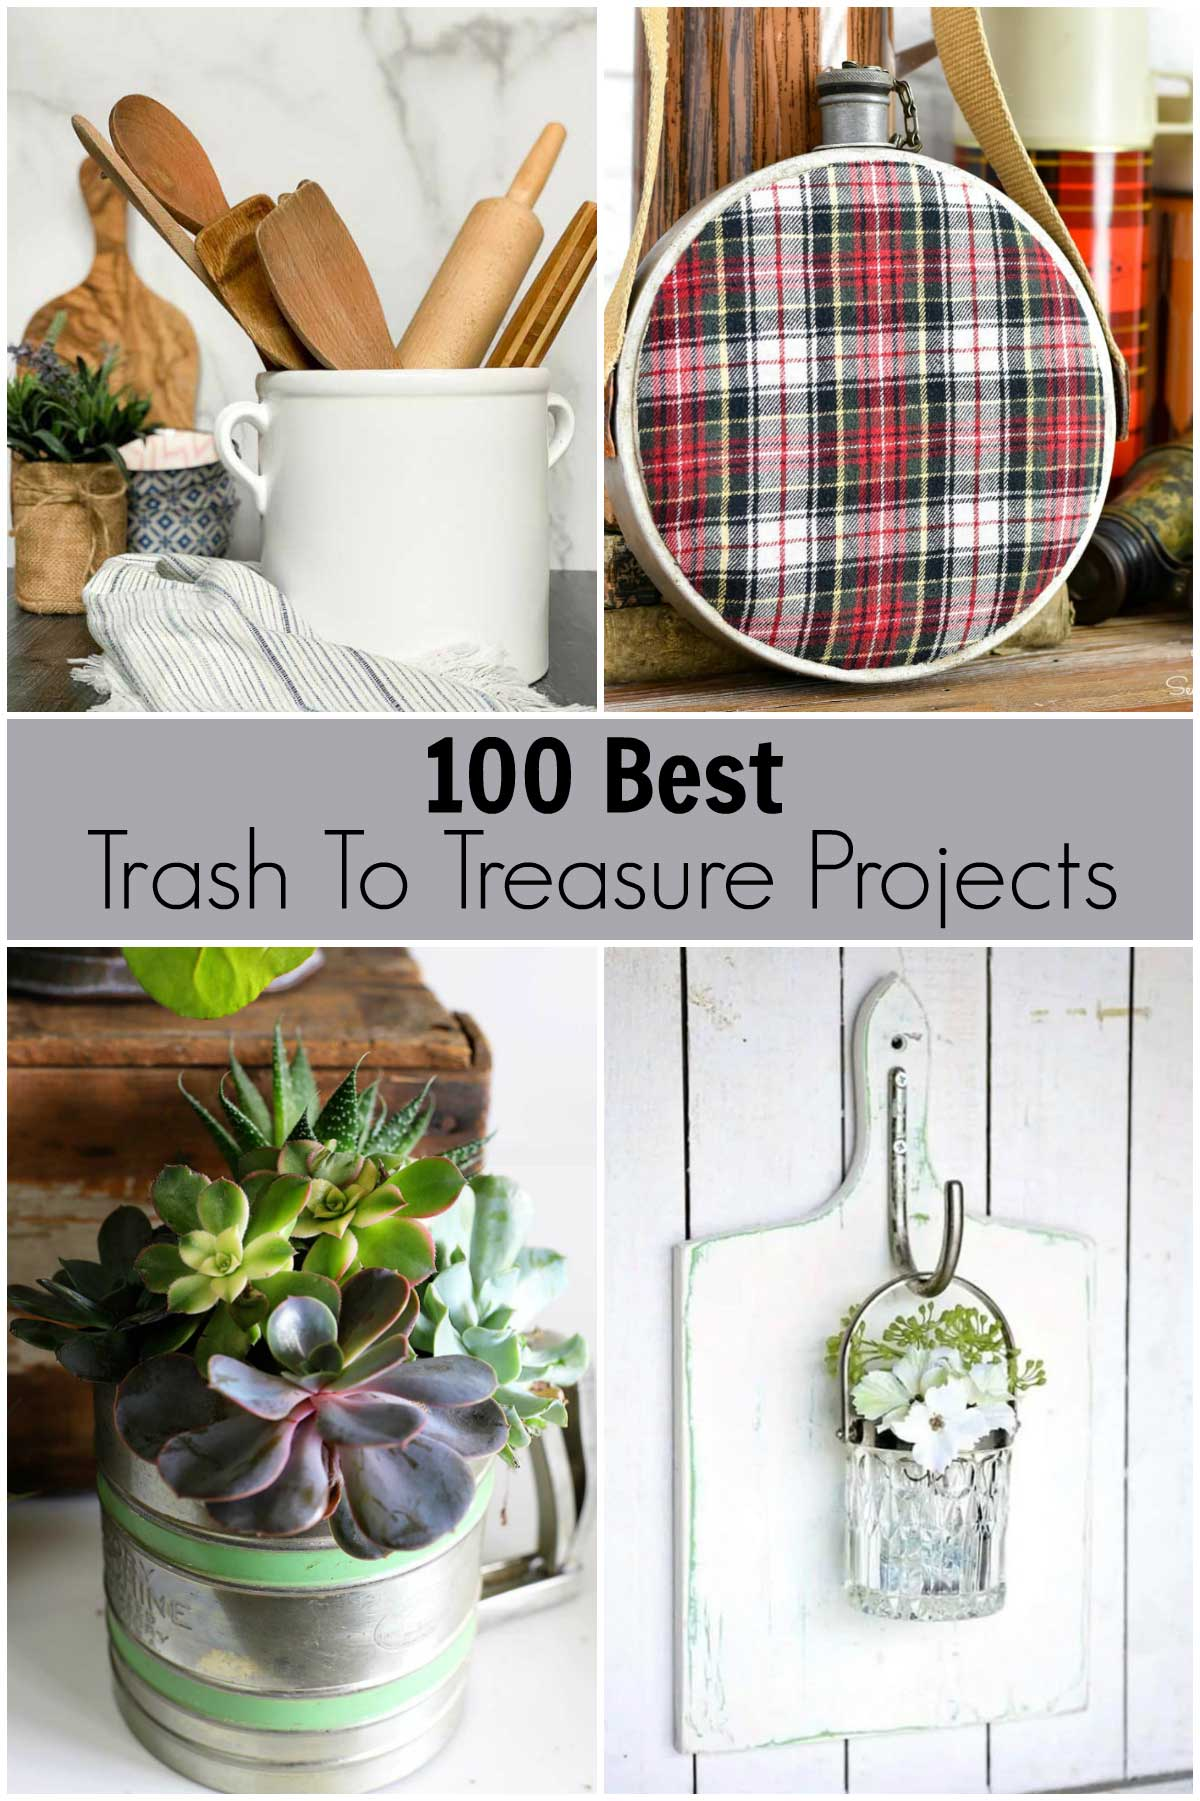 100 best trash to treasure projects - upcycling